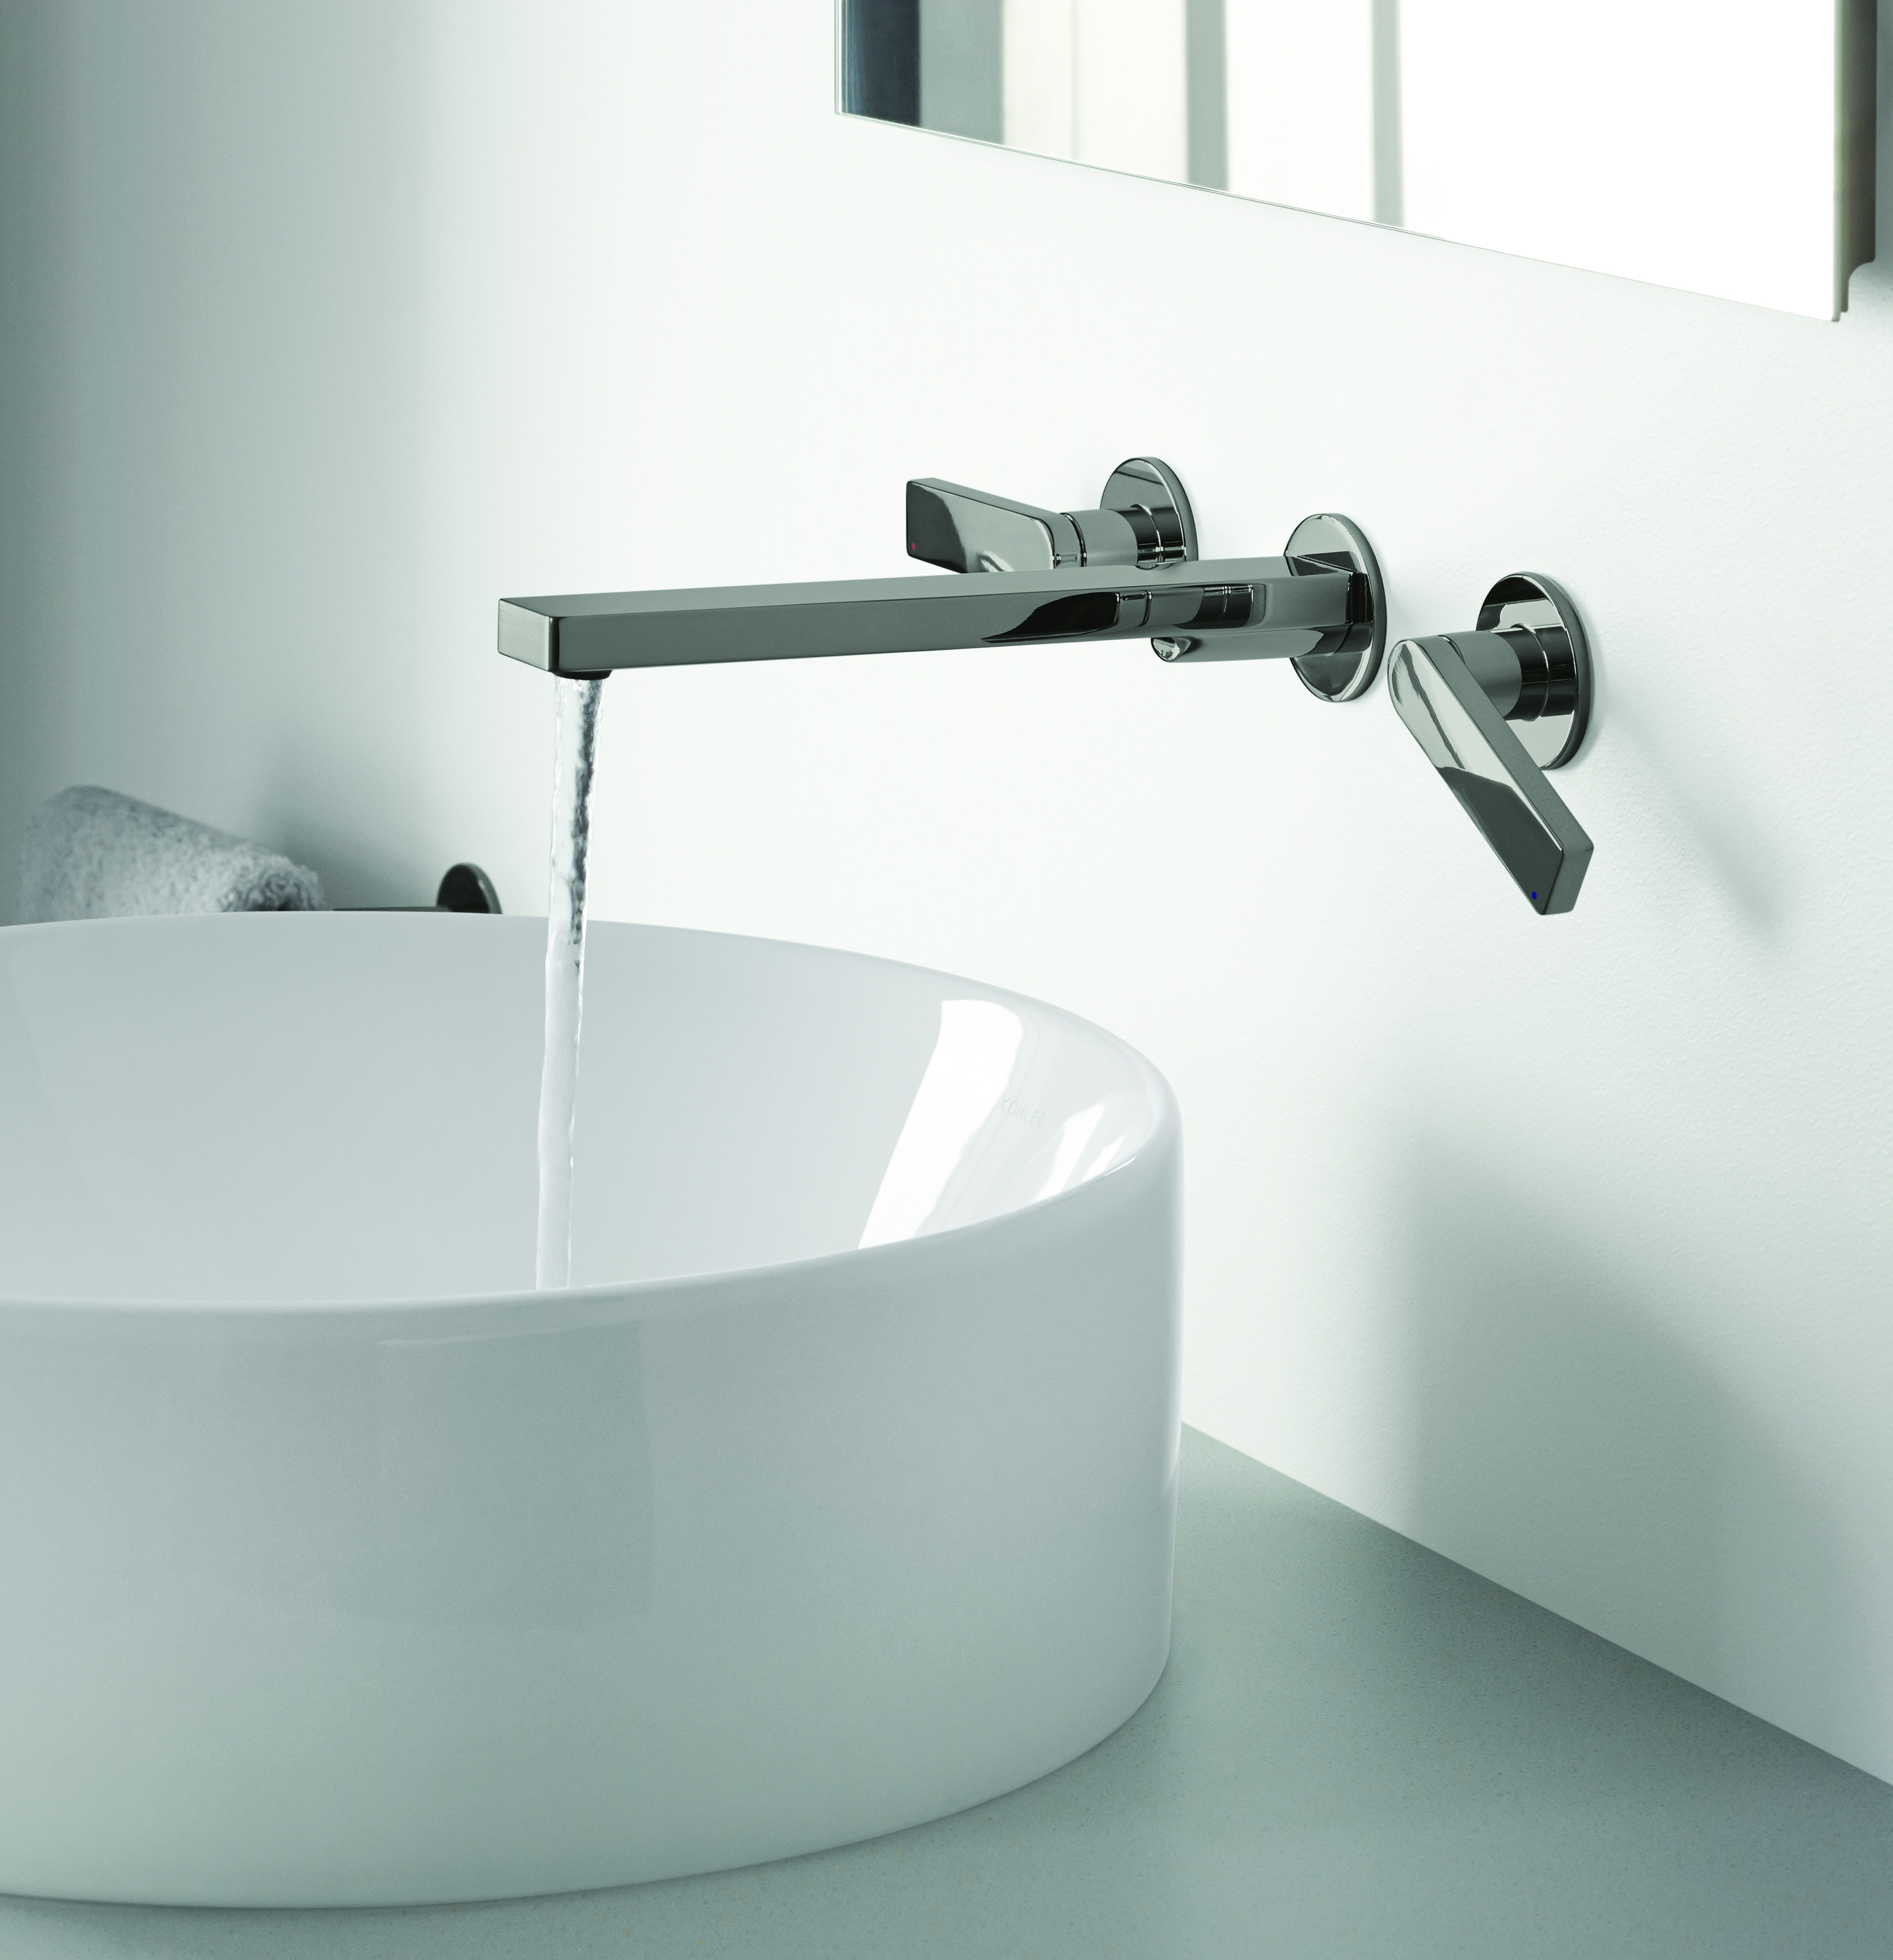 Kohler Introduces Elegant and Simple Composed Tapware Range – EBOSS